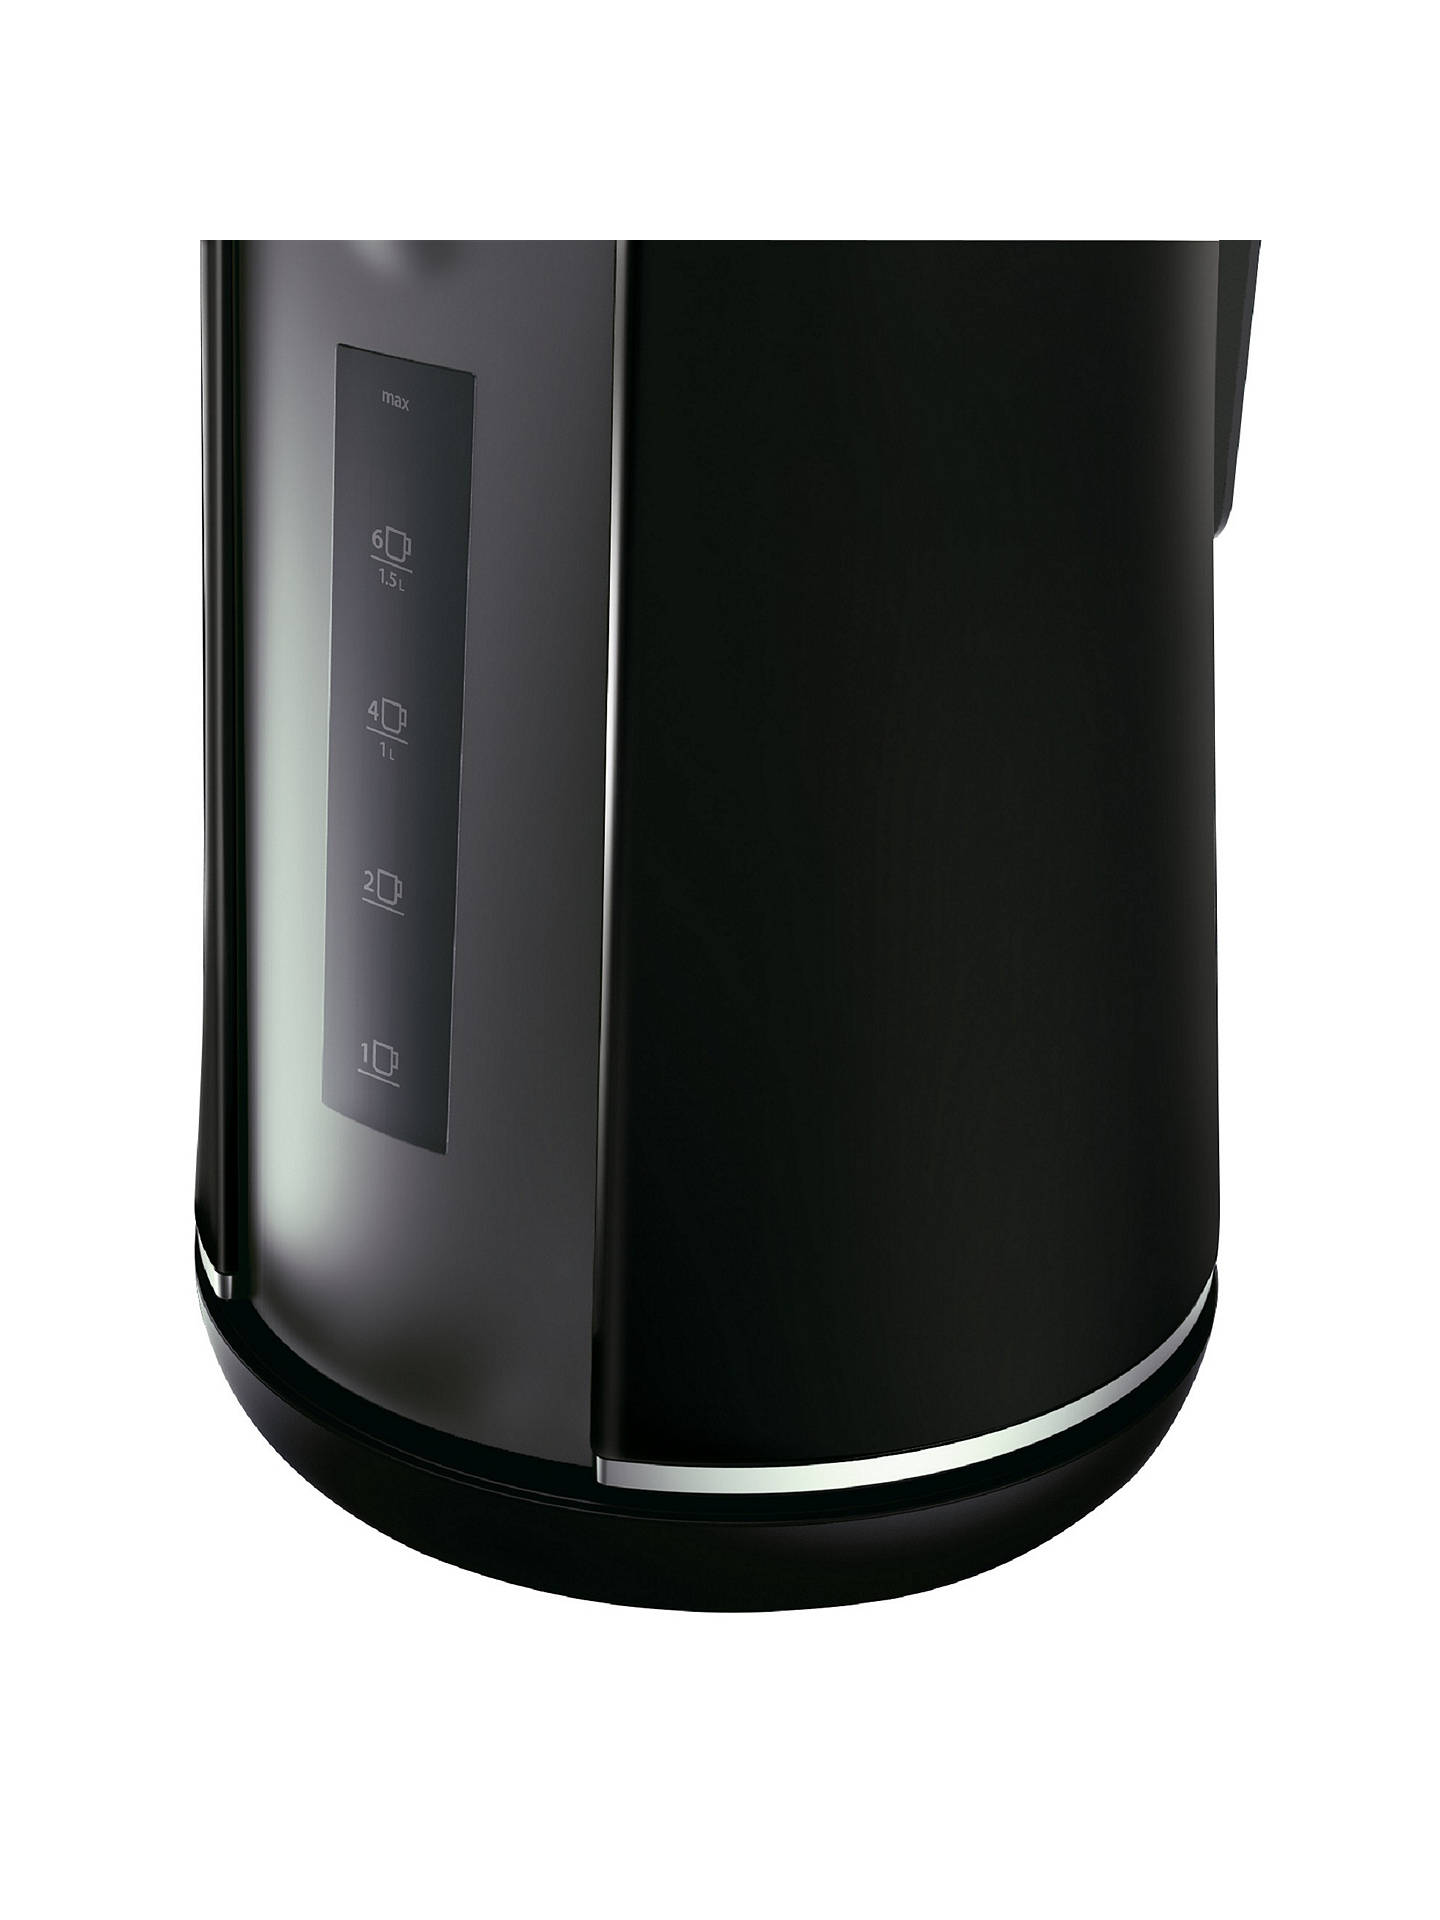 Hotpoint WK 30M AB0 UK Kettle, Black at